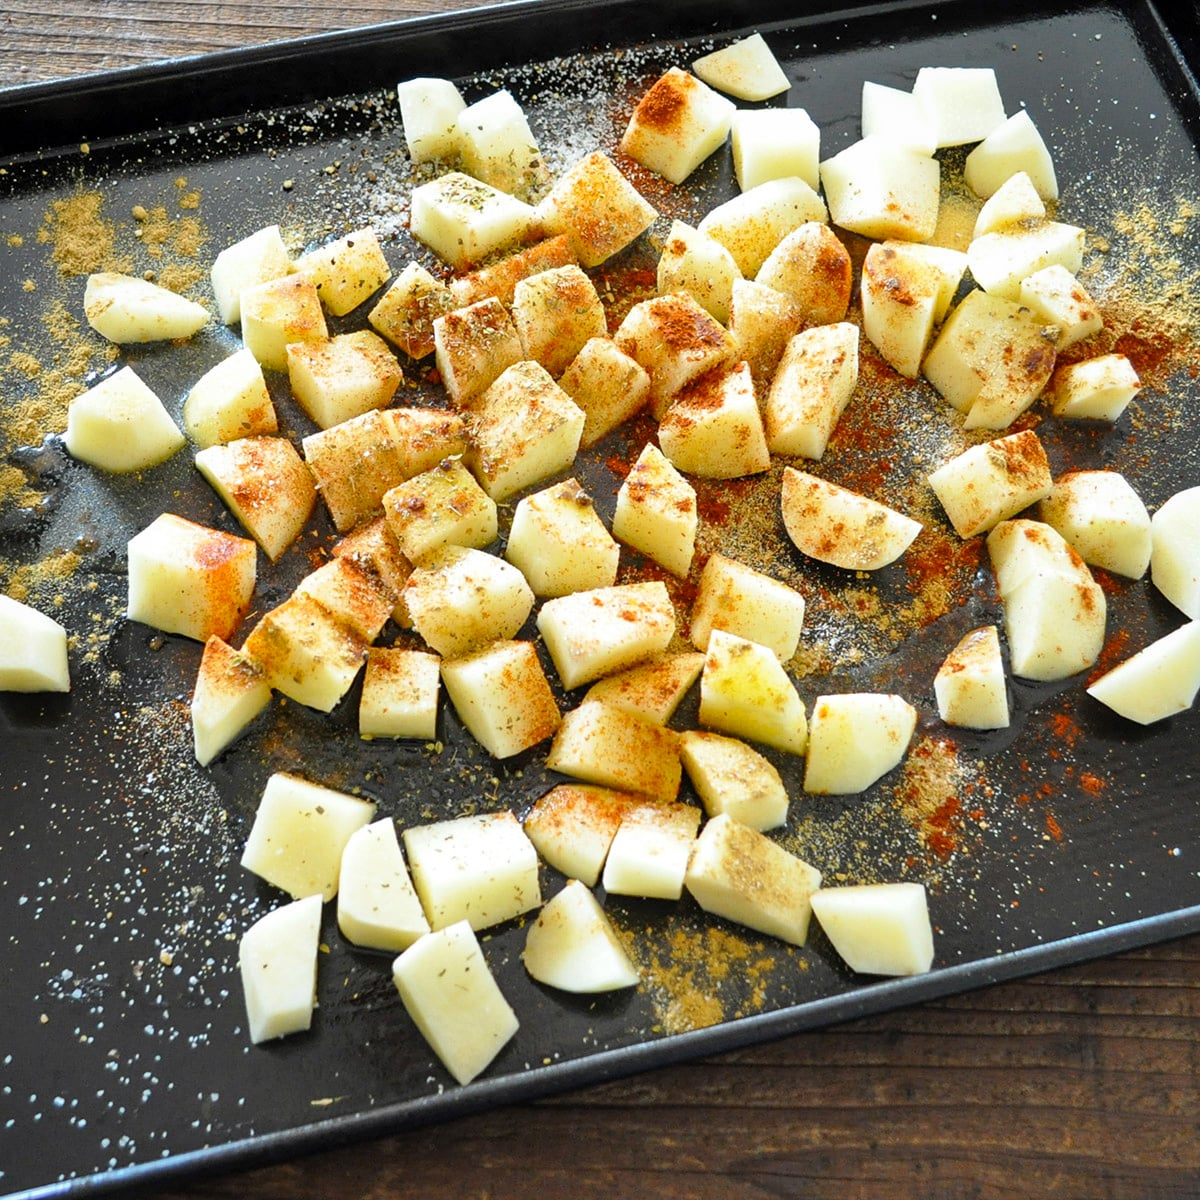 cubed potatoes with seasoning on a black cookie sheet